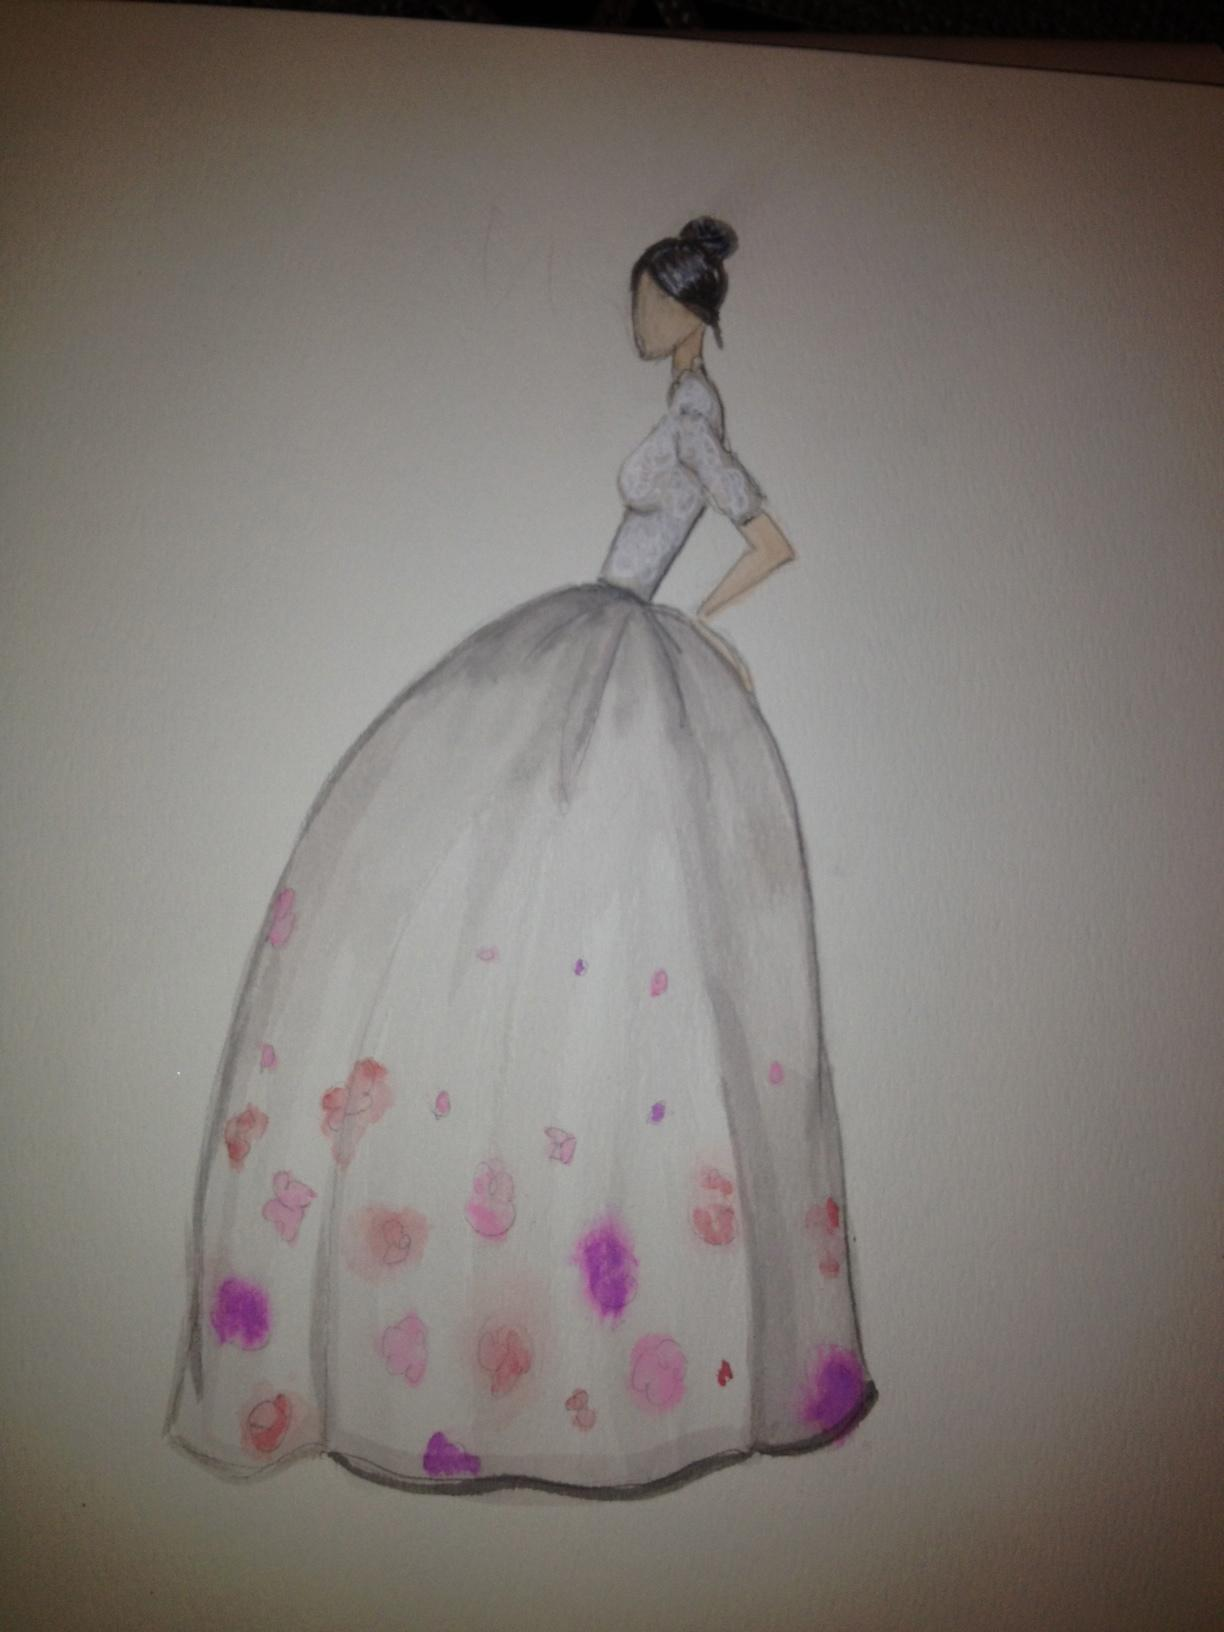 FINAL ~ EMBELLISHED ~ WATERCOLOR ~ SKETCHES ~ Feminine Ways - image 14 - student project